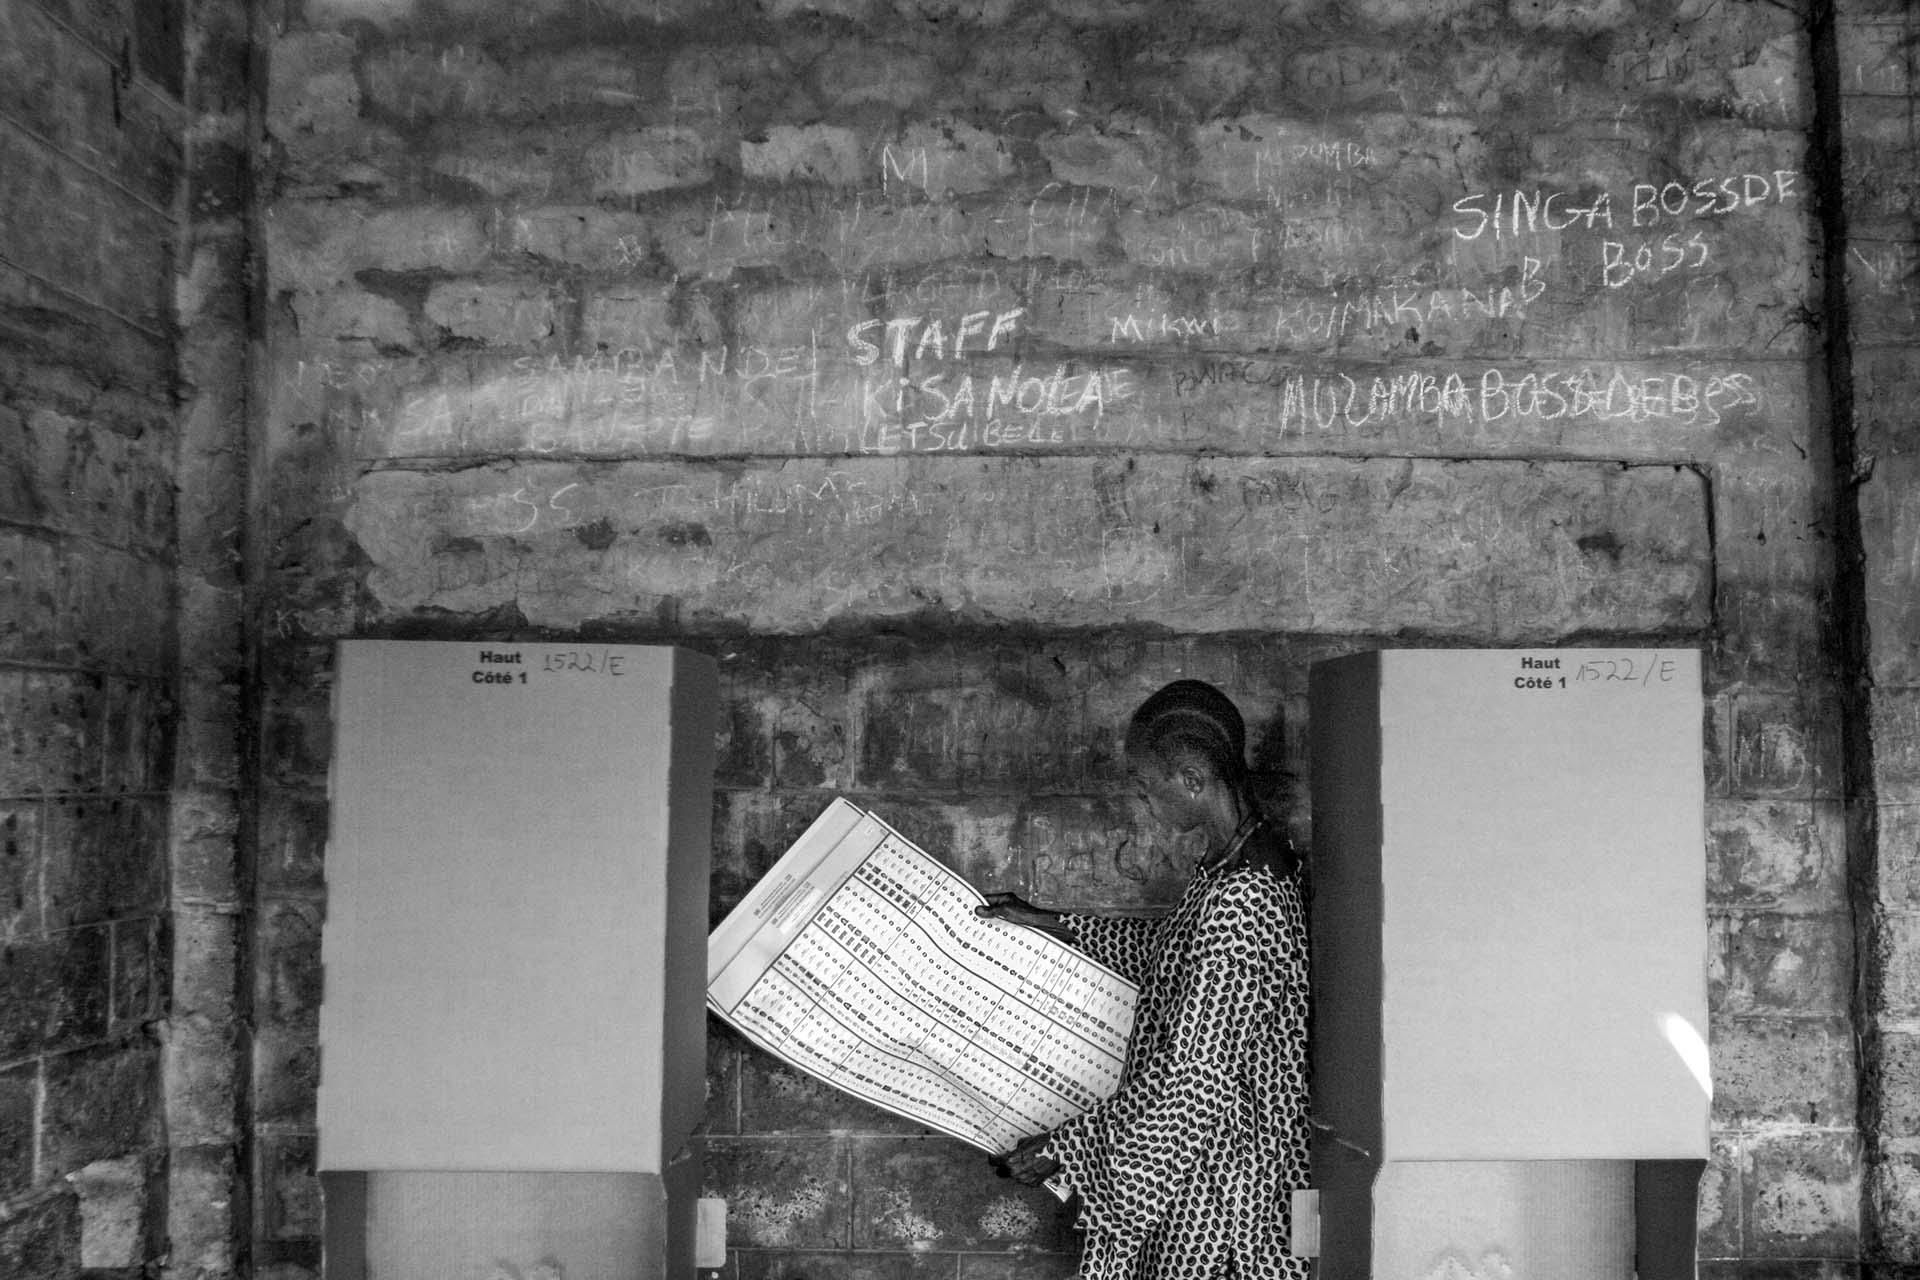 A Congolese man studies the 6-page ballot paper for legislative candidates at a polling station in Kinshasa.